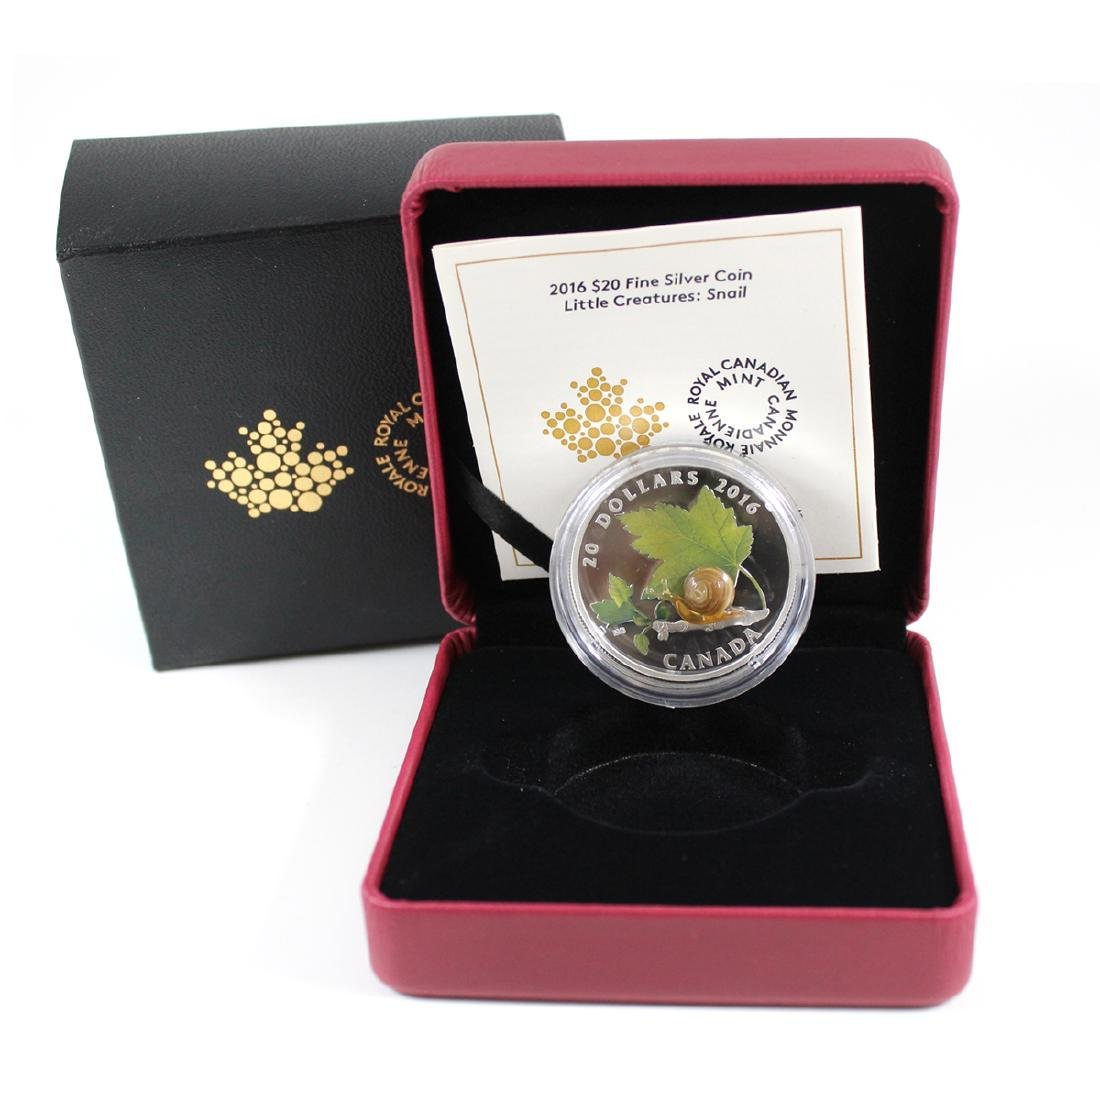 2016 Canada $20 Little Creatures - Snail With Murano